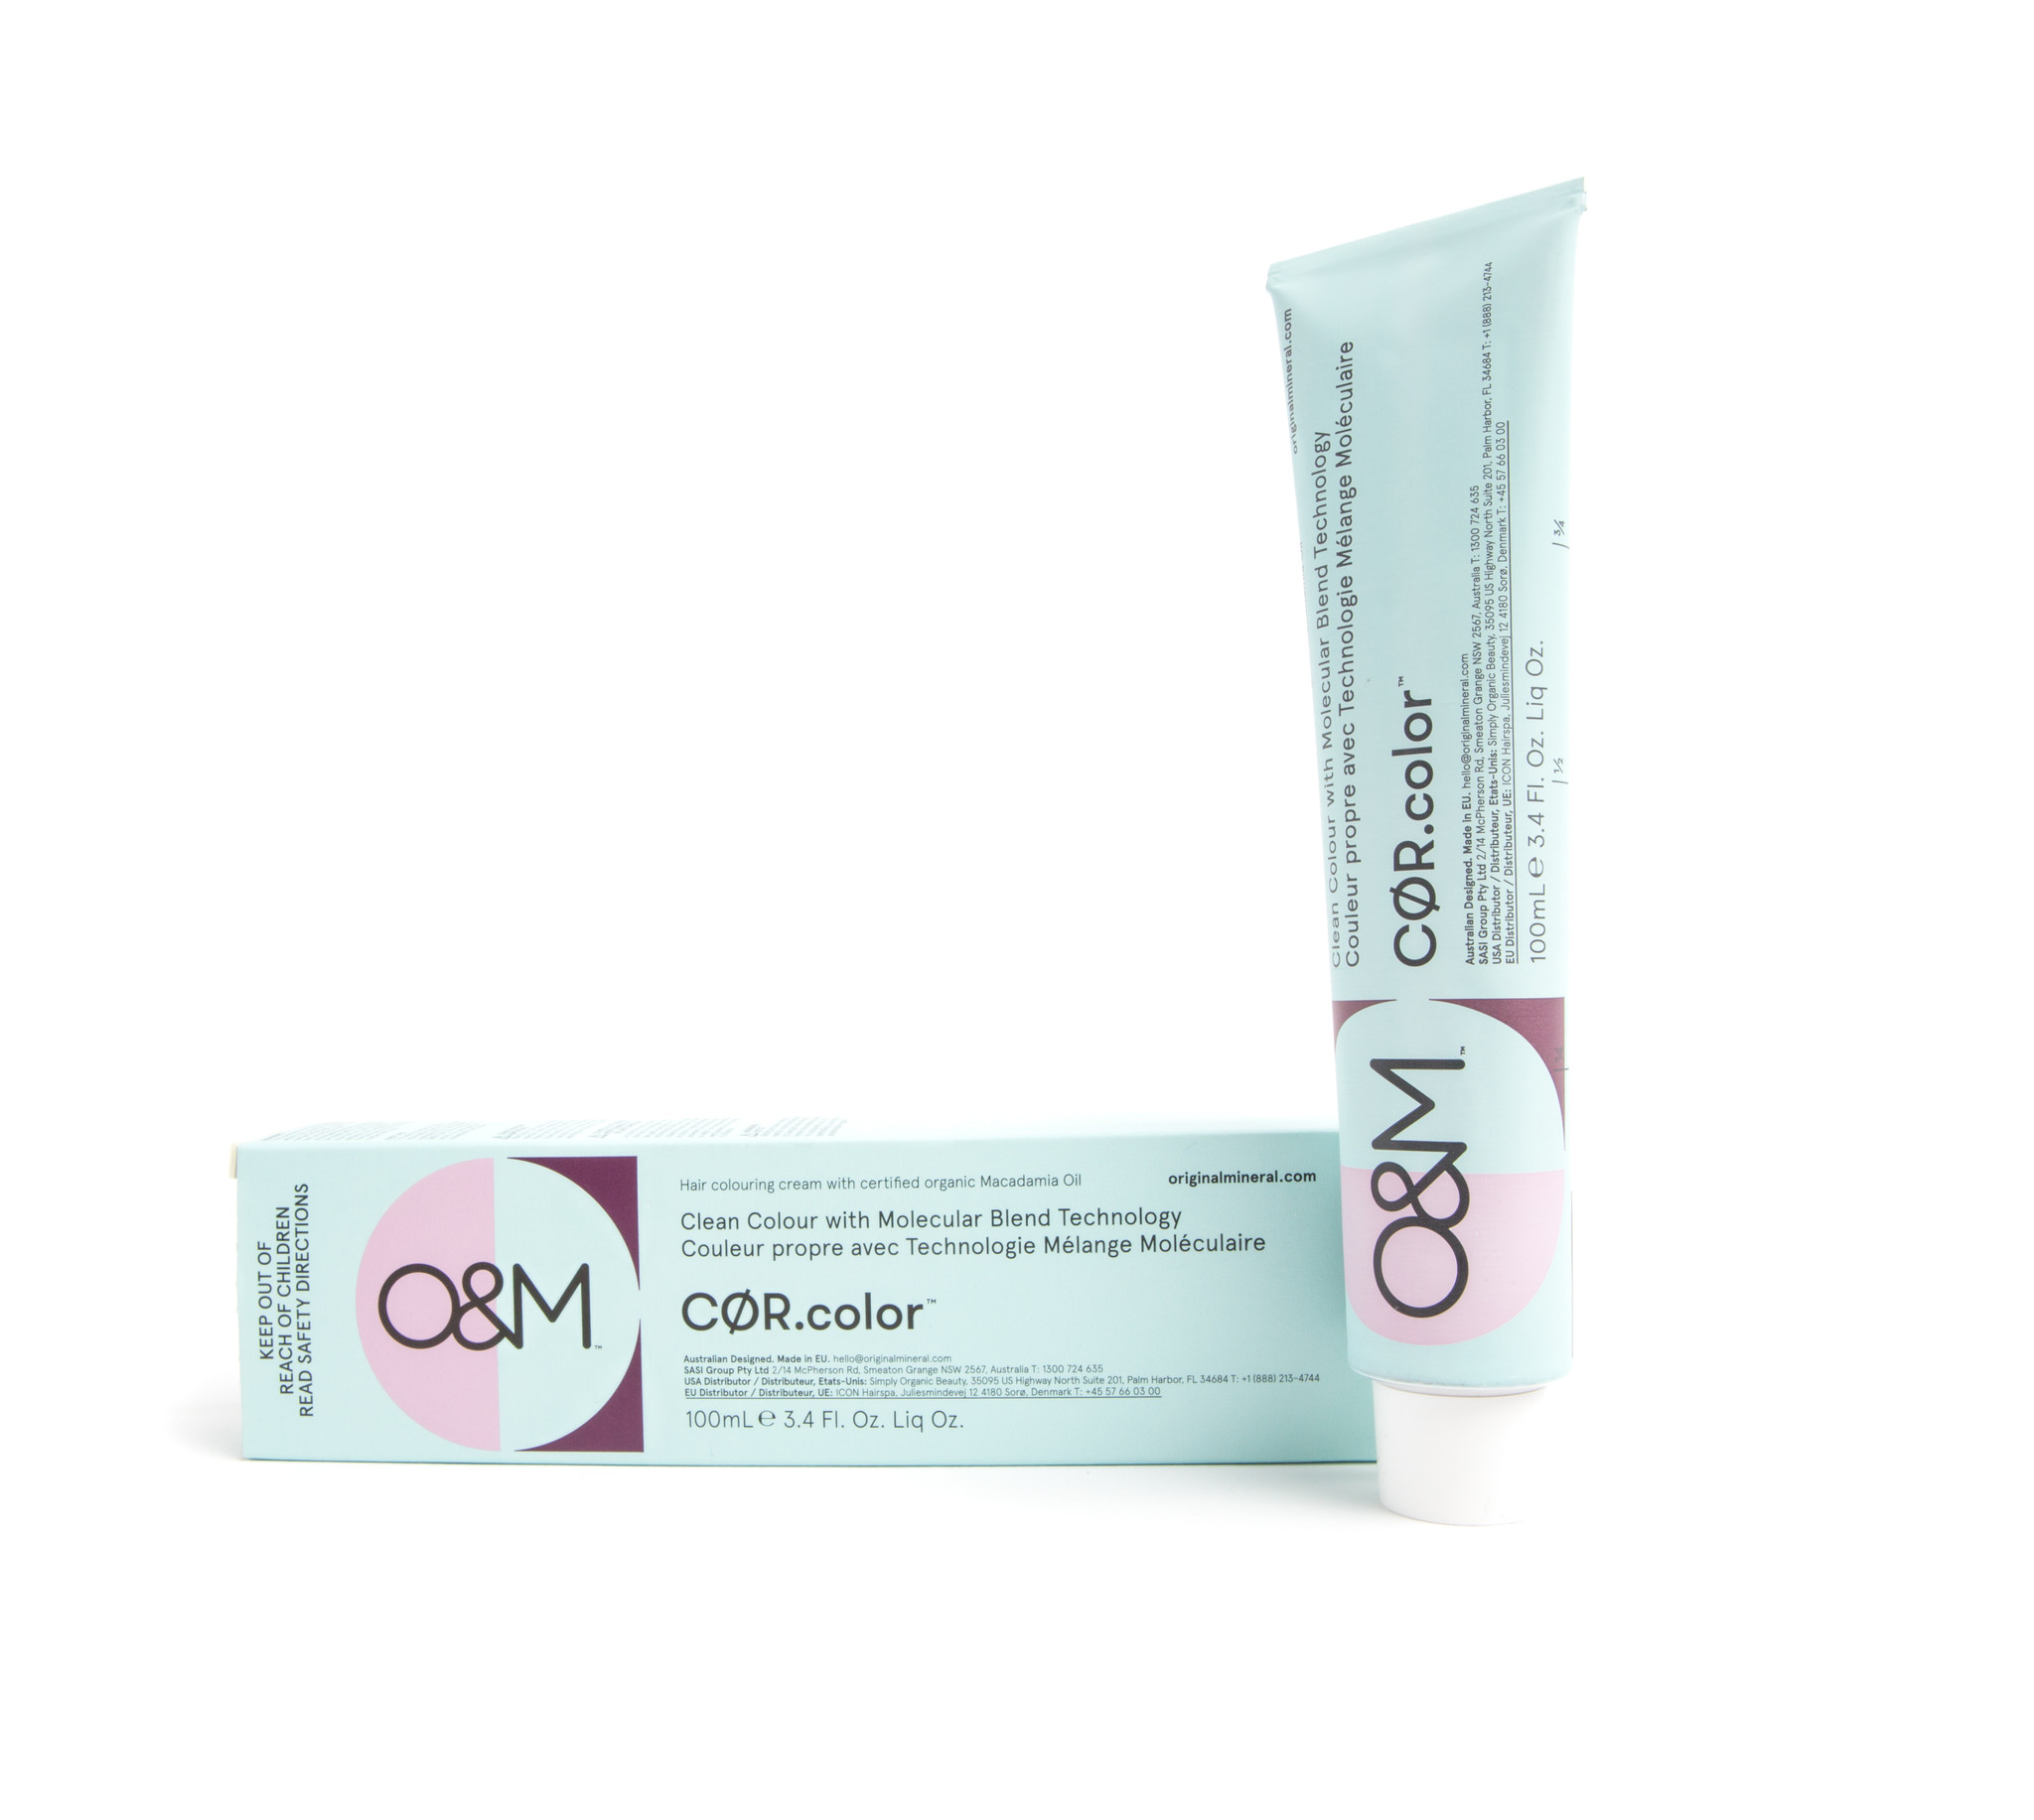 O&M - Original Mineral O&M CØR.color Lightest Pearl Blonde 10.8 100g